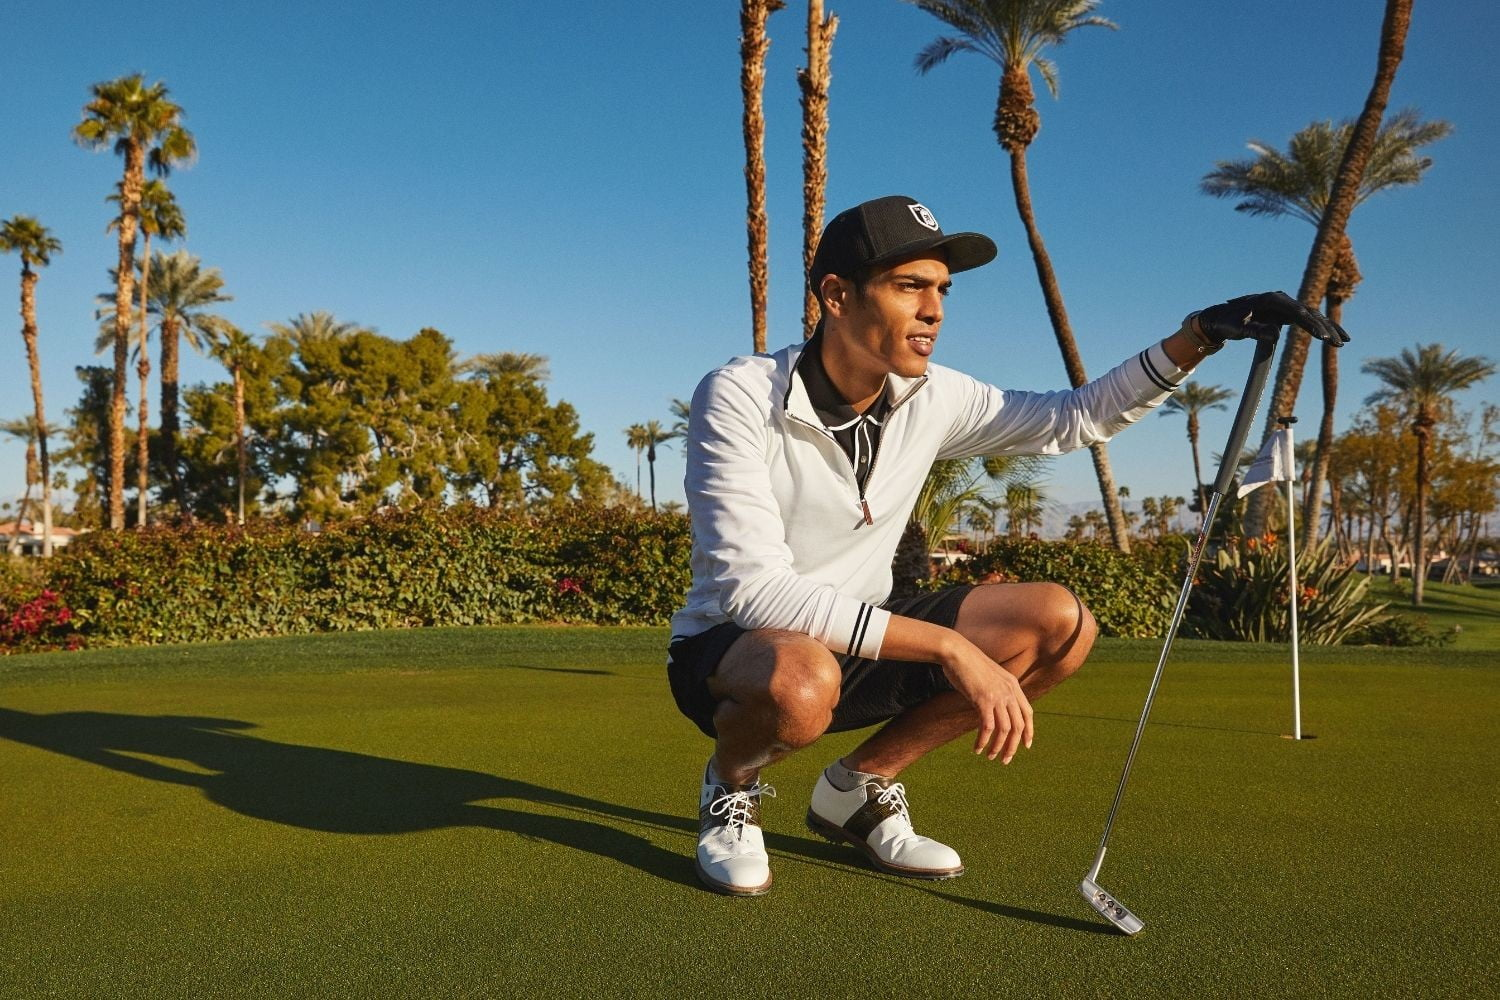 Leave It to Todd Snyder To Dream Up a Winning Menswear Collection For Golfers - The Manual